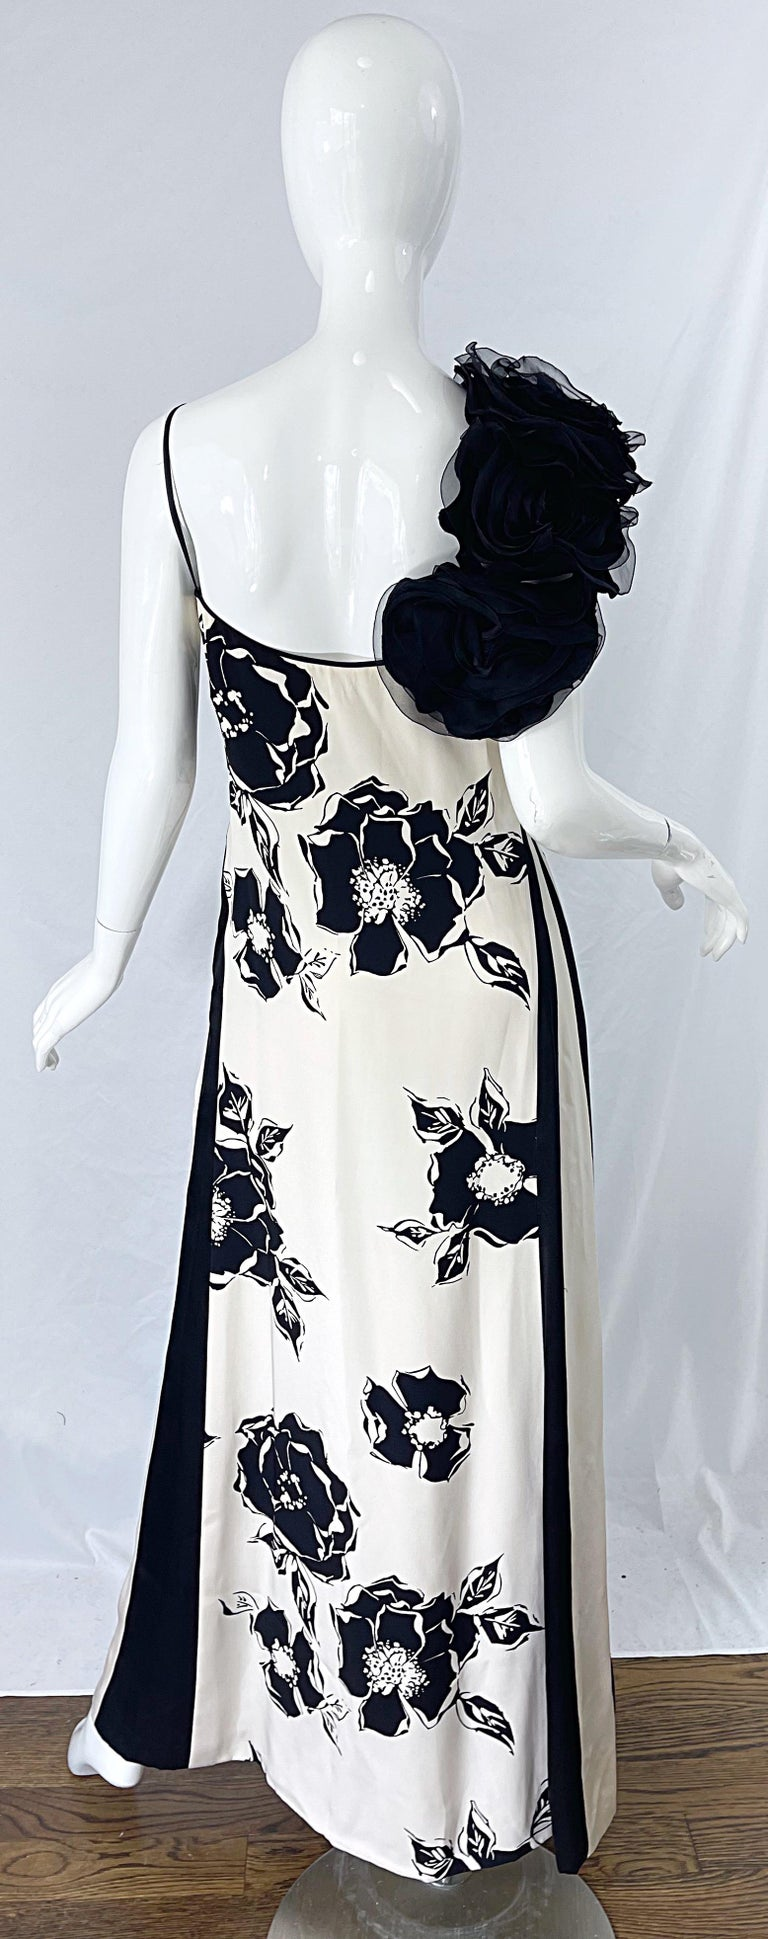 1990s James Galanos Black and White Rosette Sleeve Vintage 90s Silk Gown Dress For Sale 5